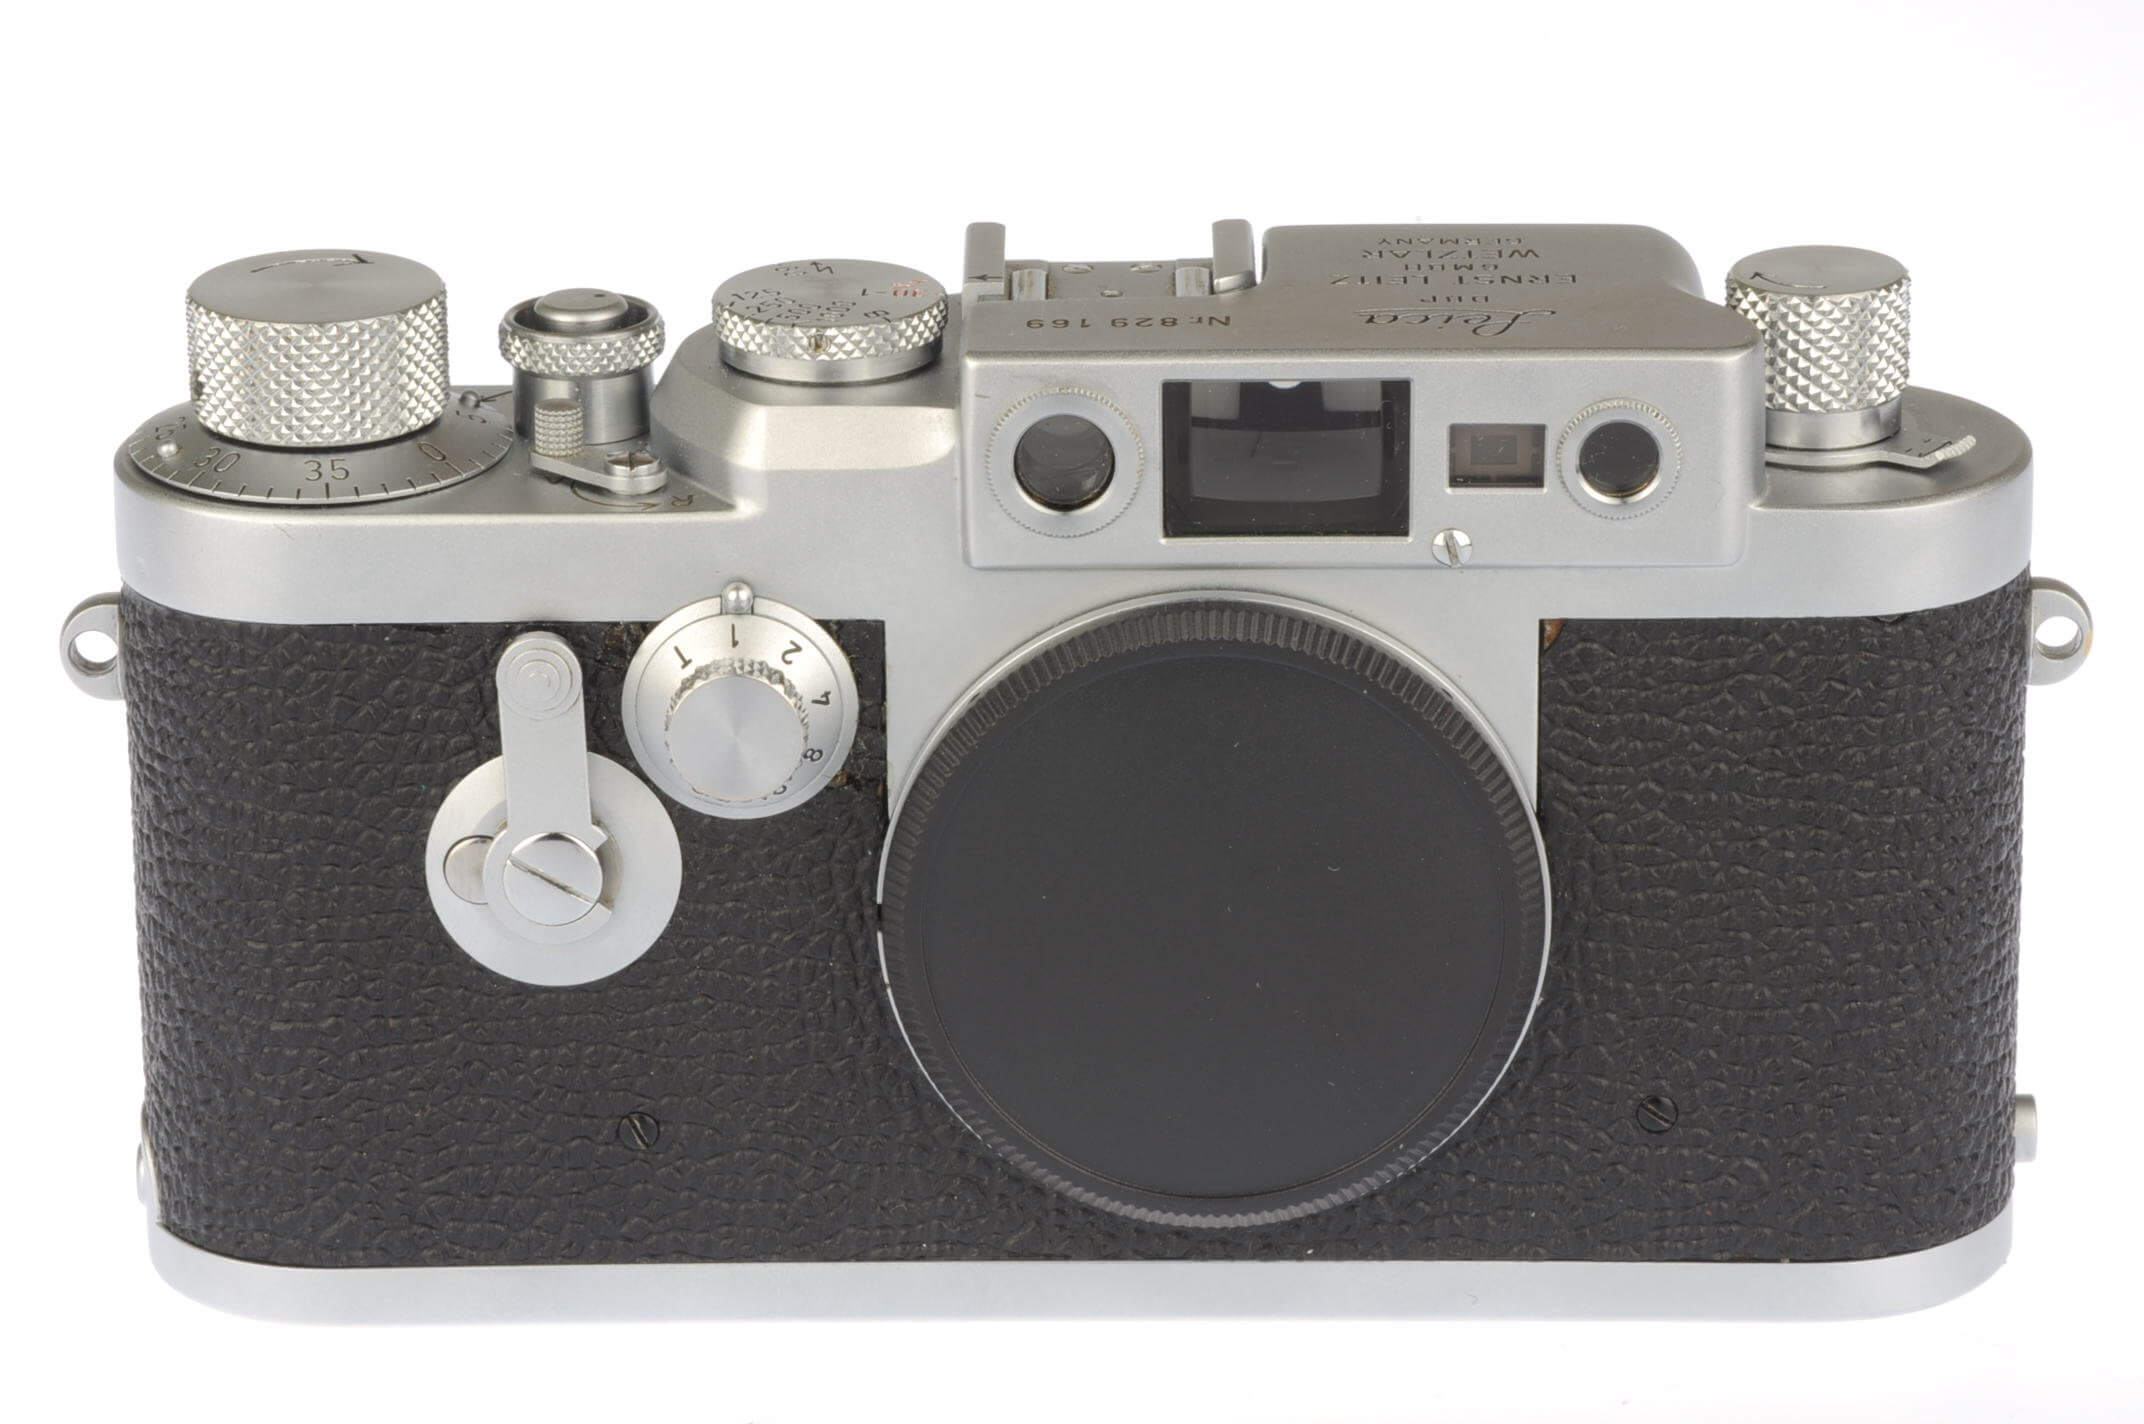 Leica IIIG body, exceptional condition, fully serviced!